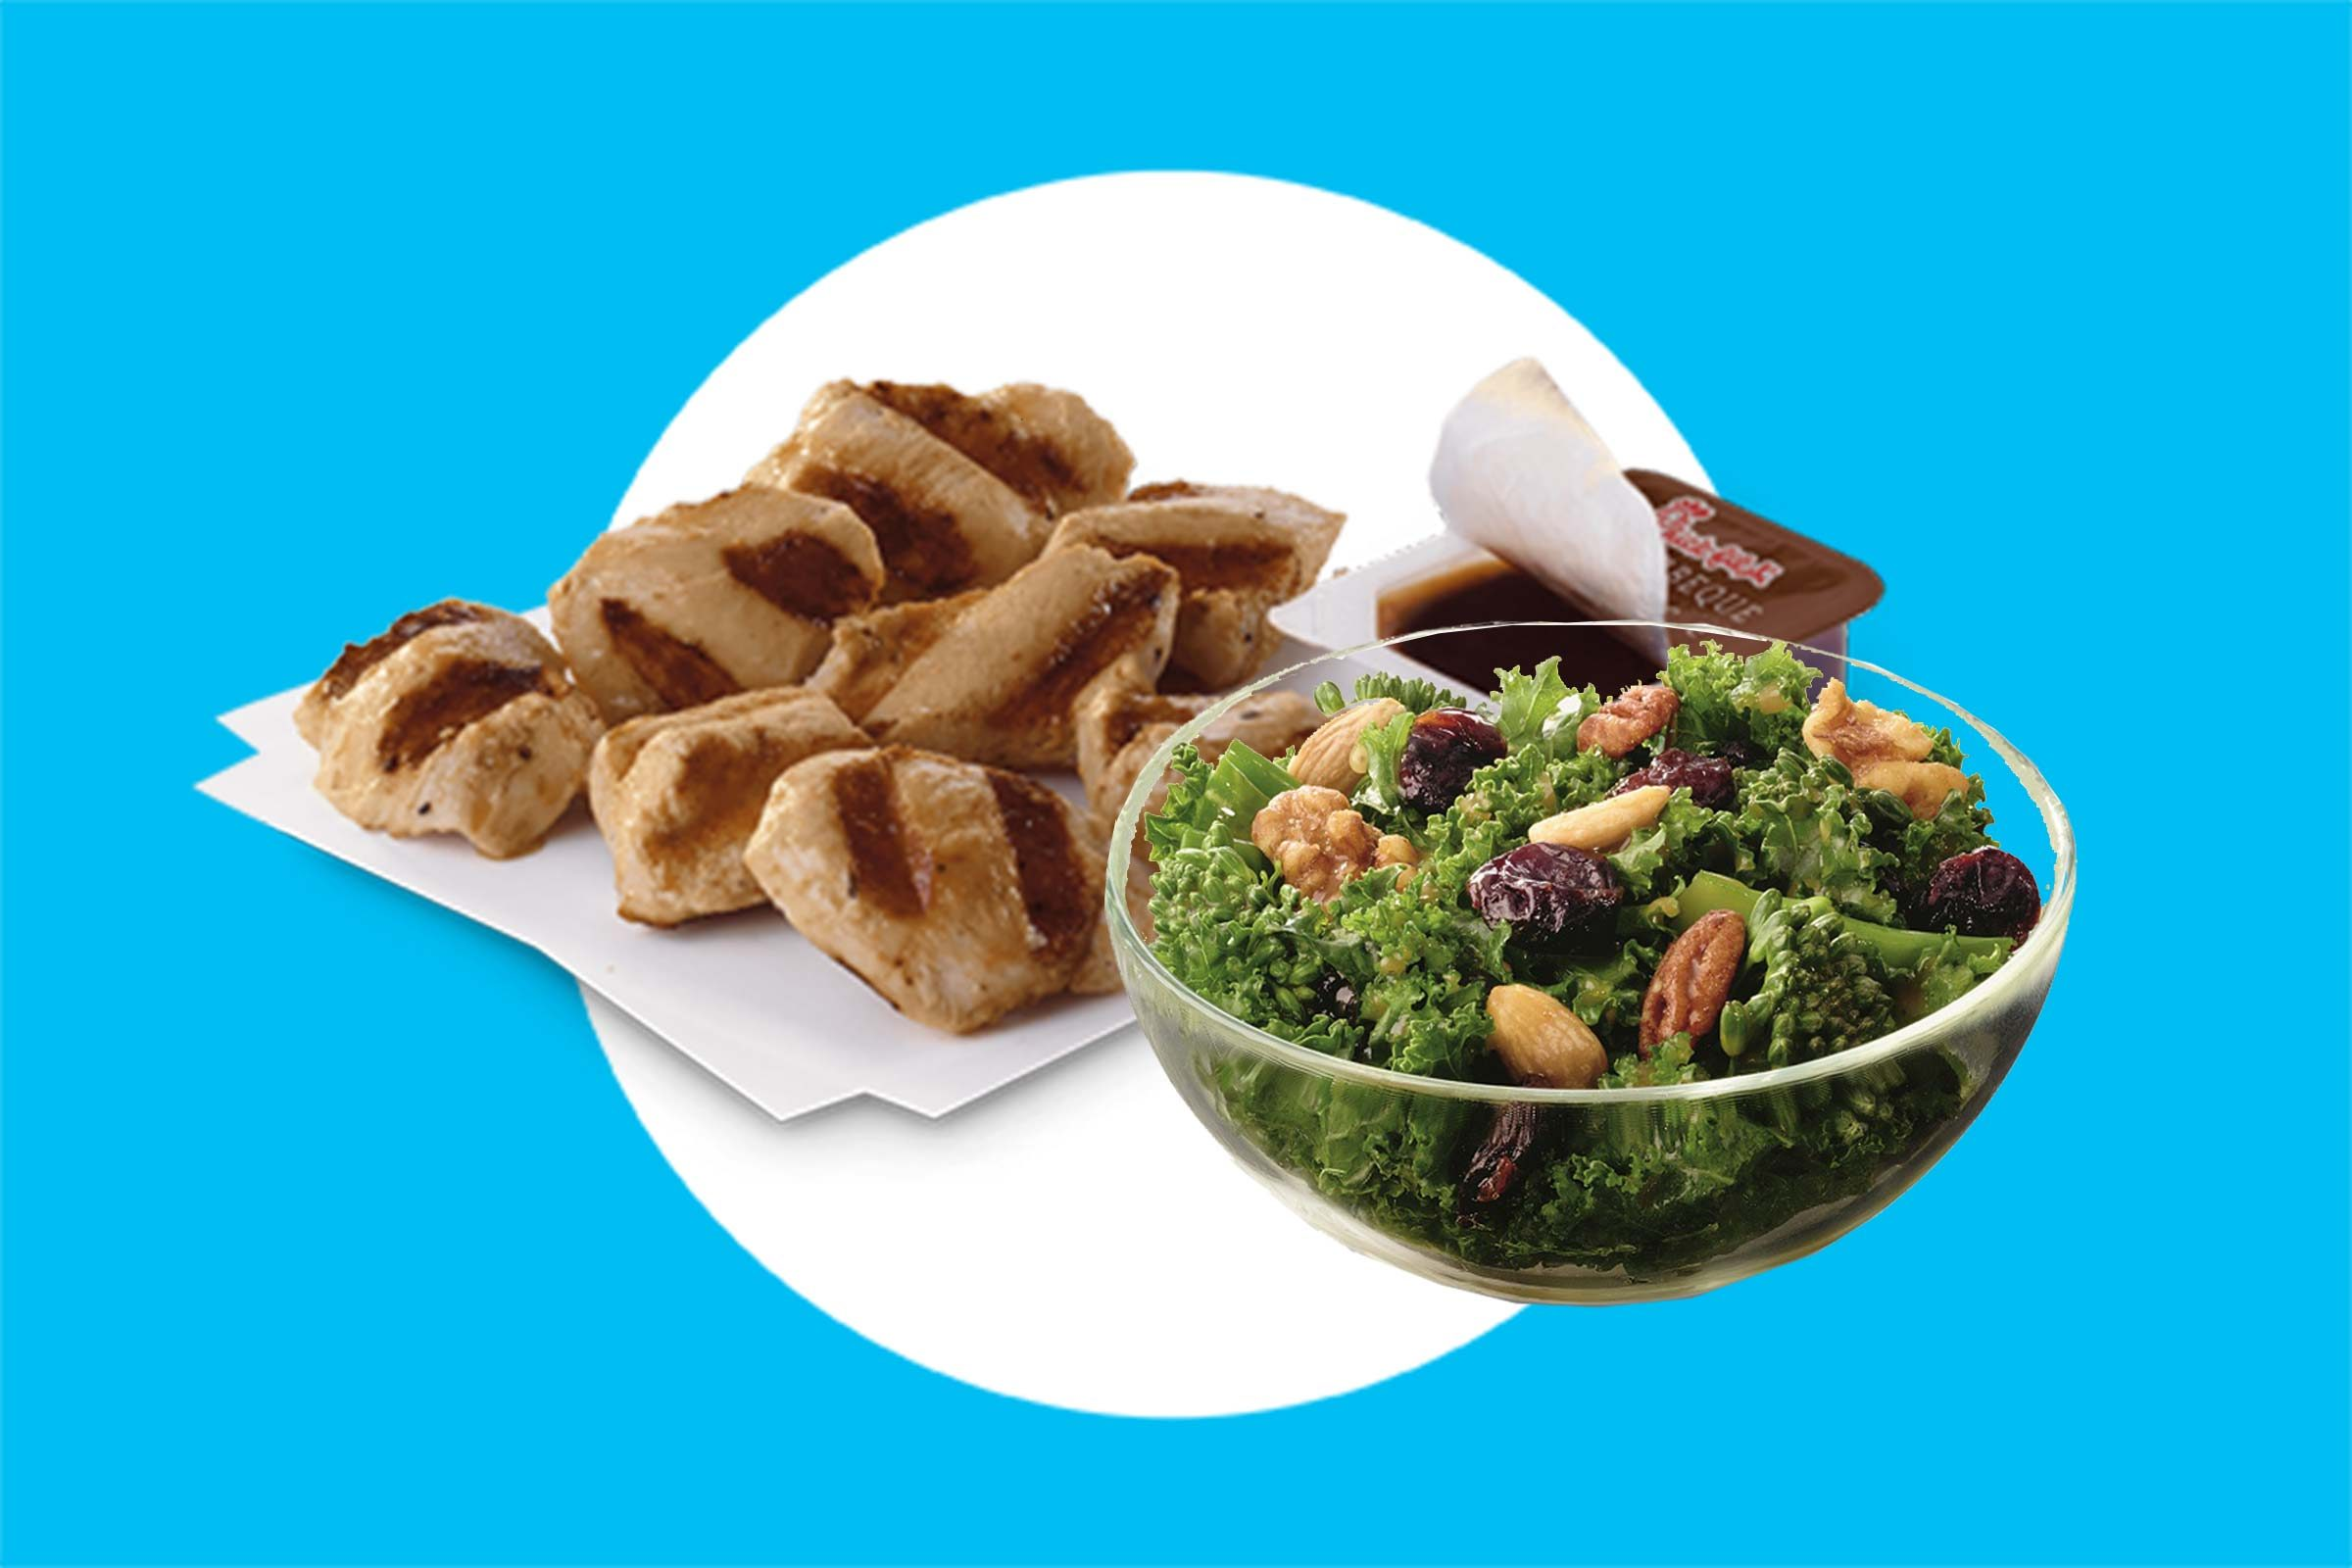 Chic-fil-A-Grilled-Chicken-Nuggets-with-Kale-Salad